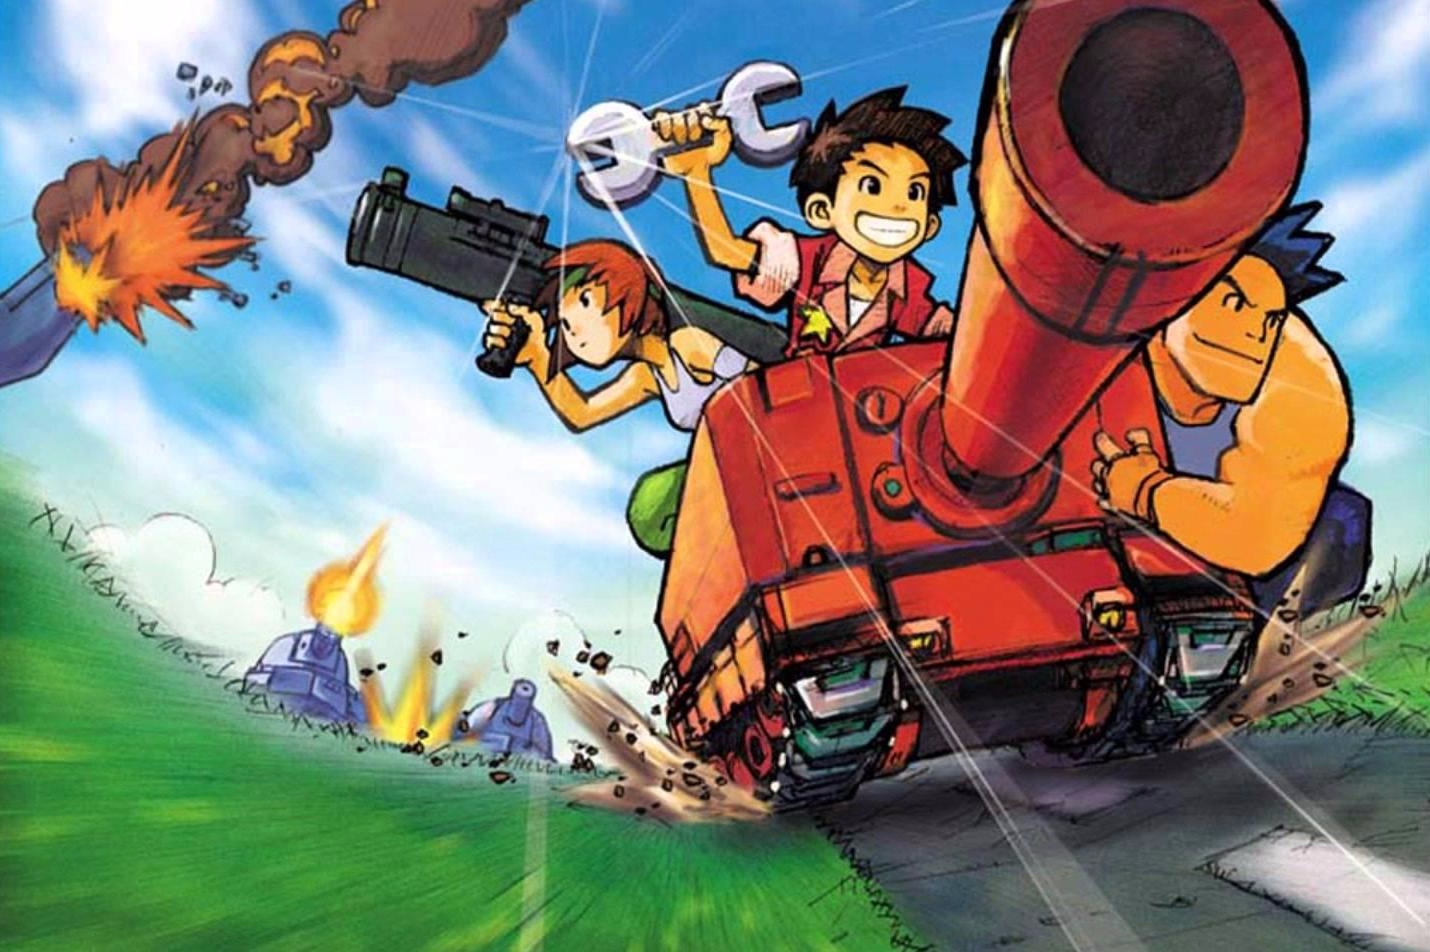 whats-keeping-nintendo-from-making-a-new-advance-wars-1496136720313